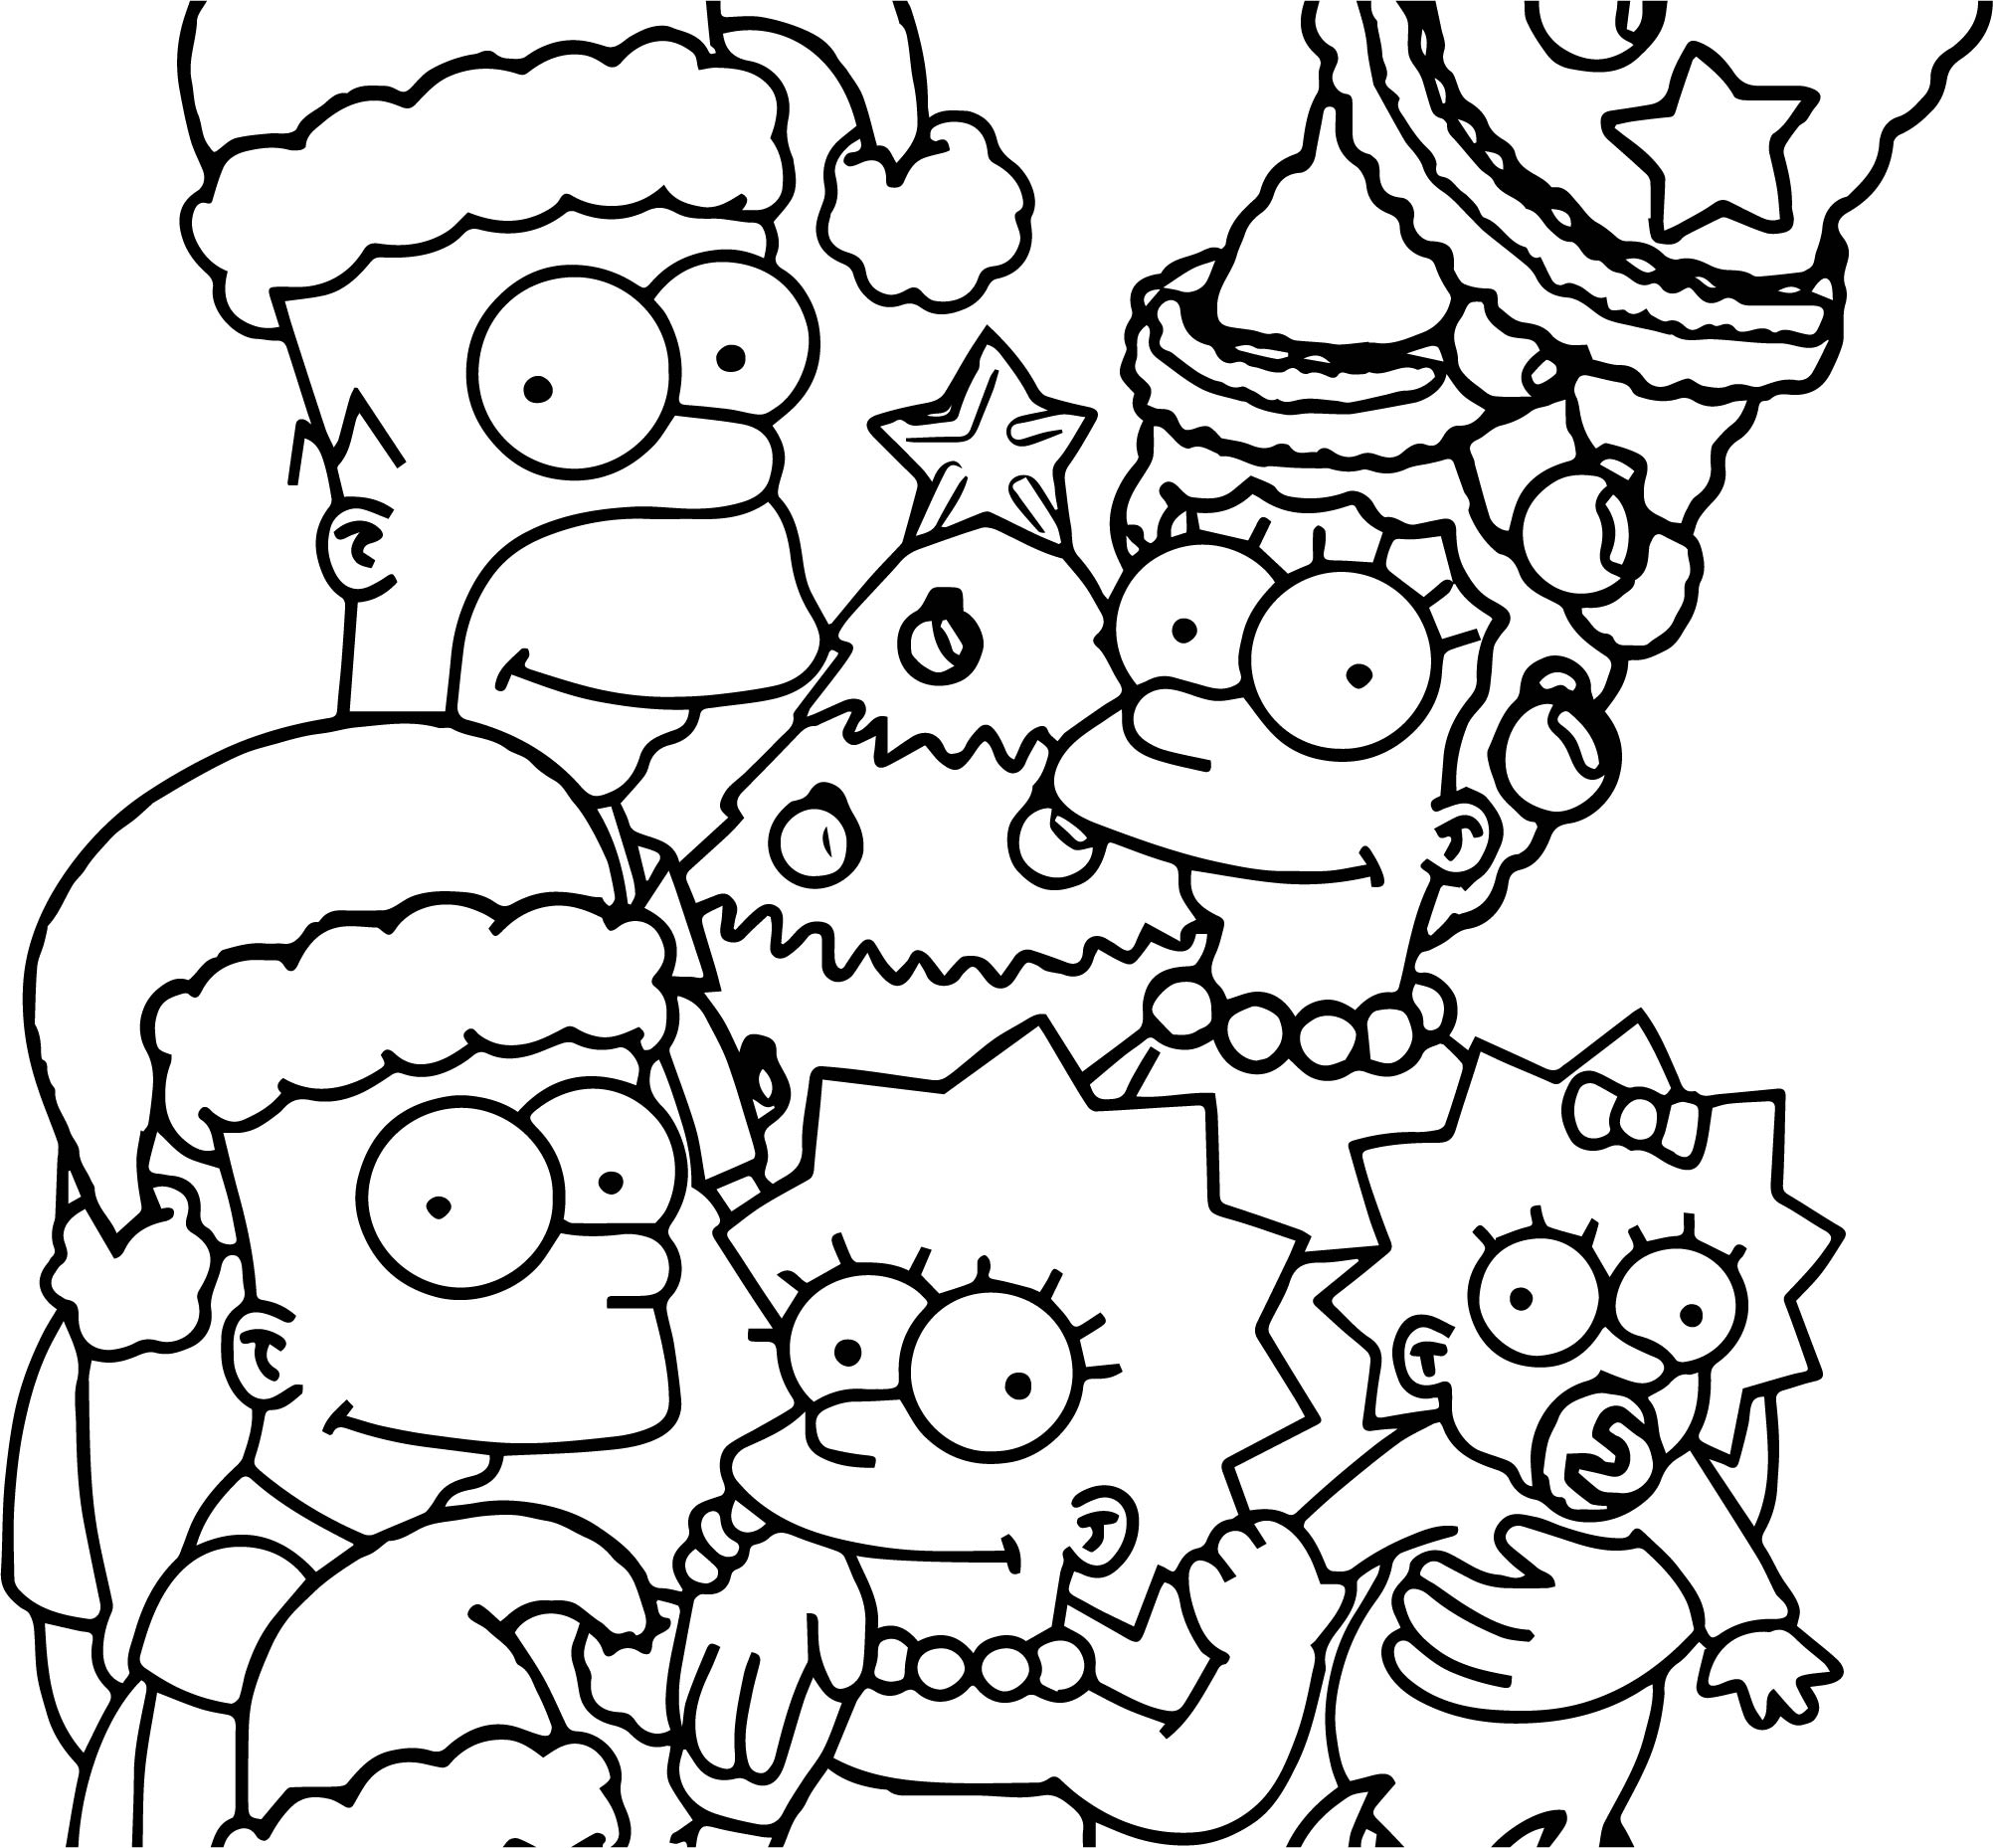 Simpsons Coloring Pages Printable